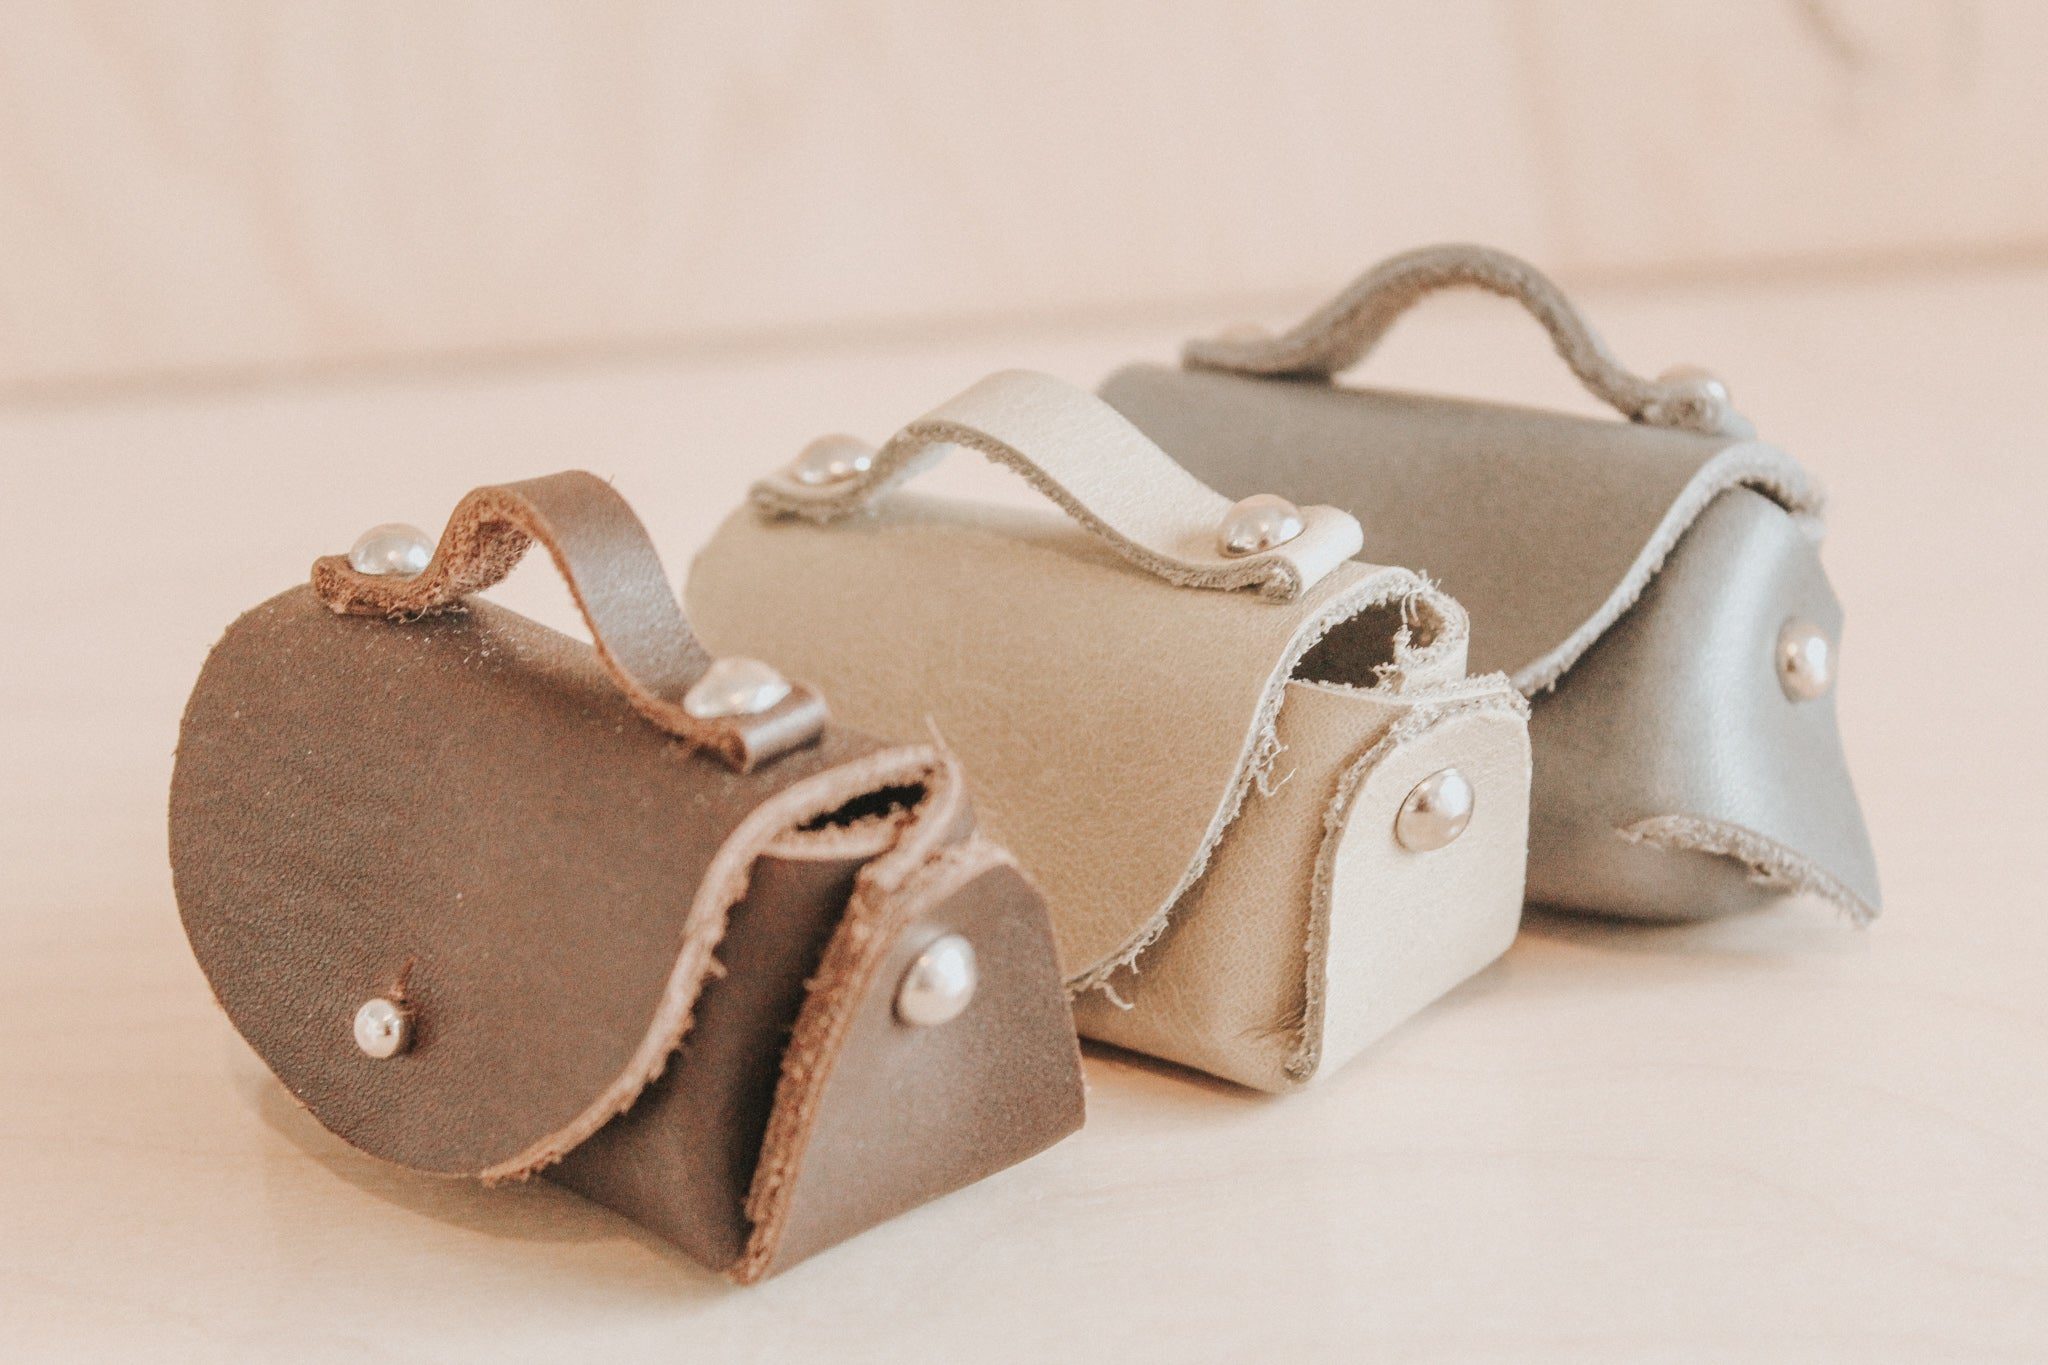 Mignon Leather Bag